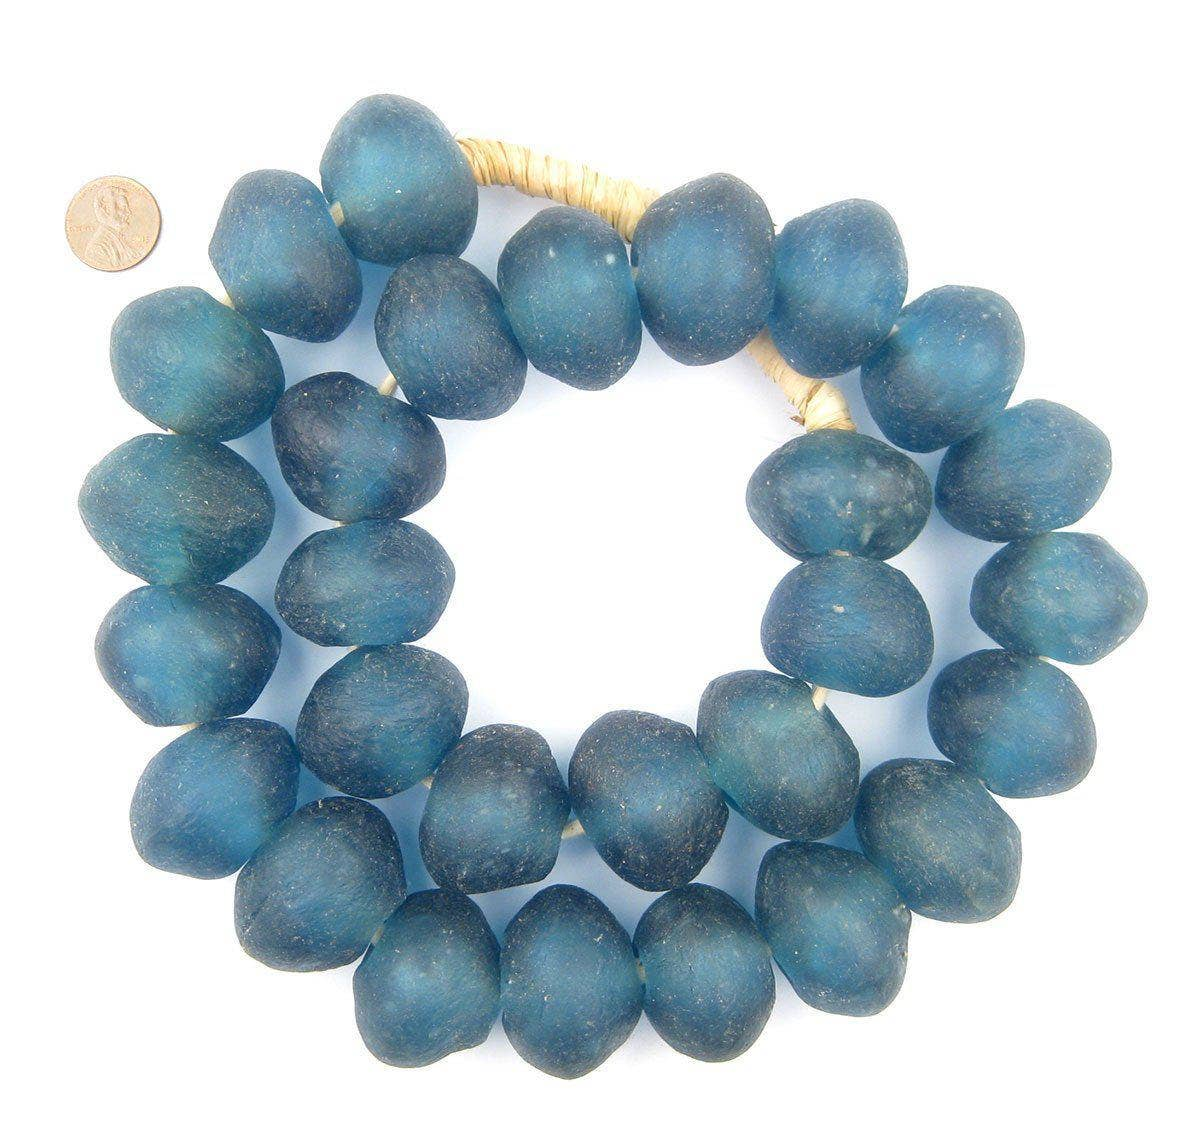 33mm Super Jumbo Light Blue Recycled Glass Beads